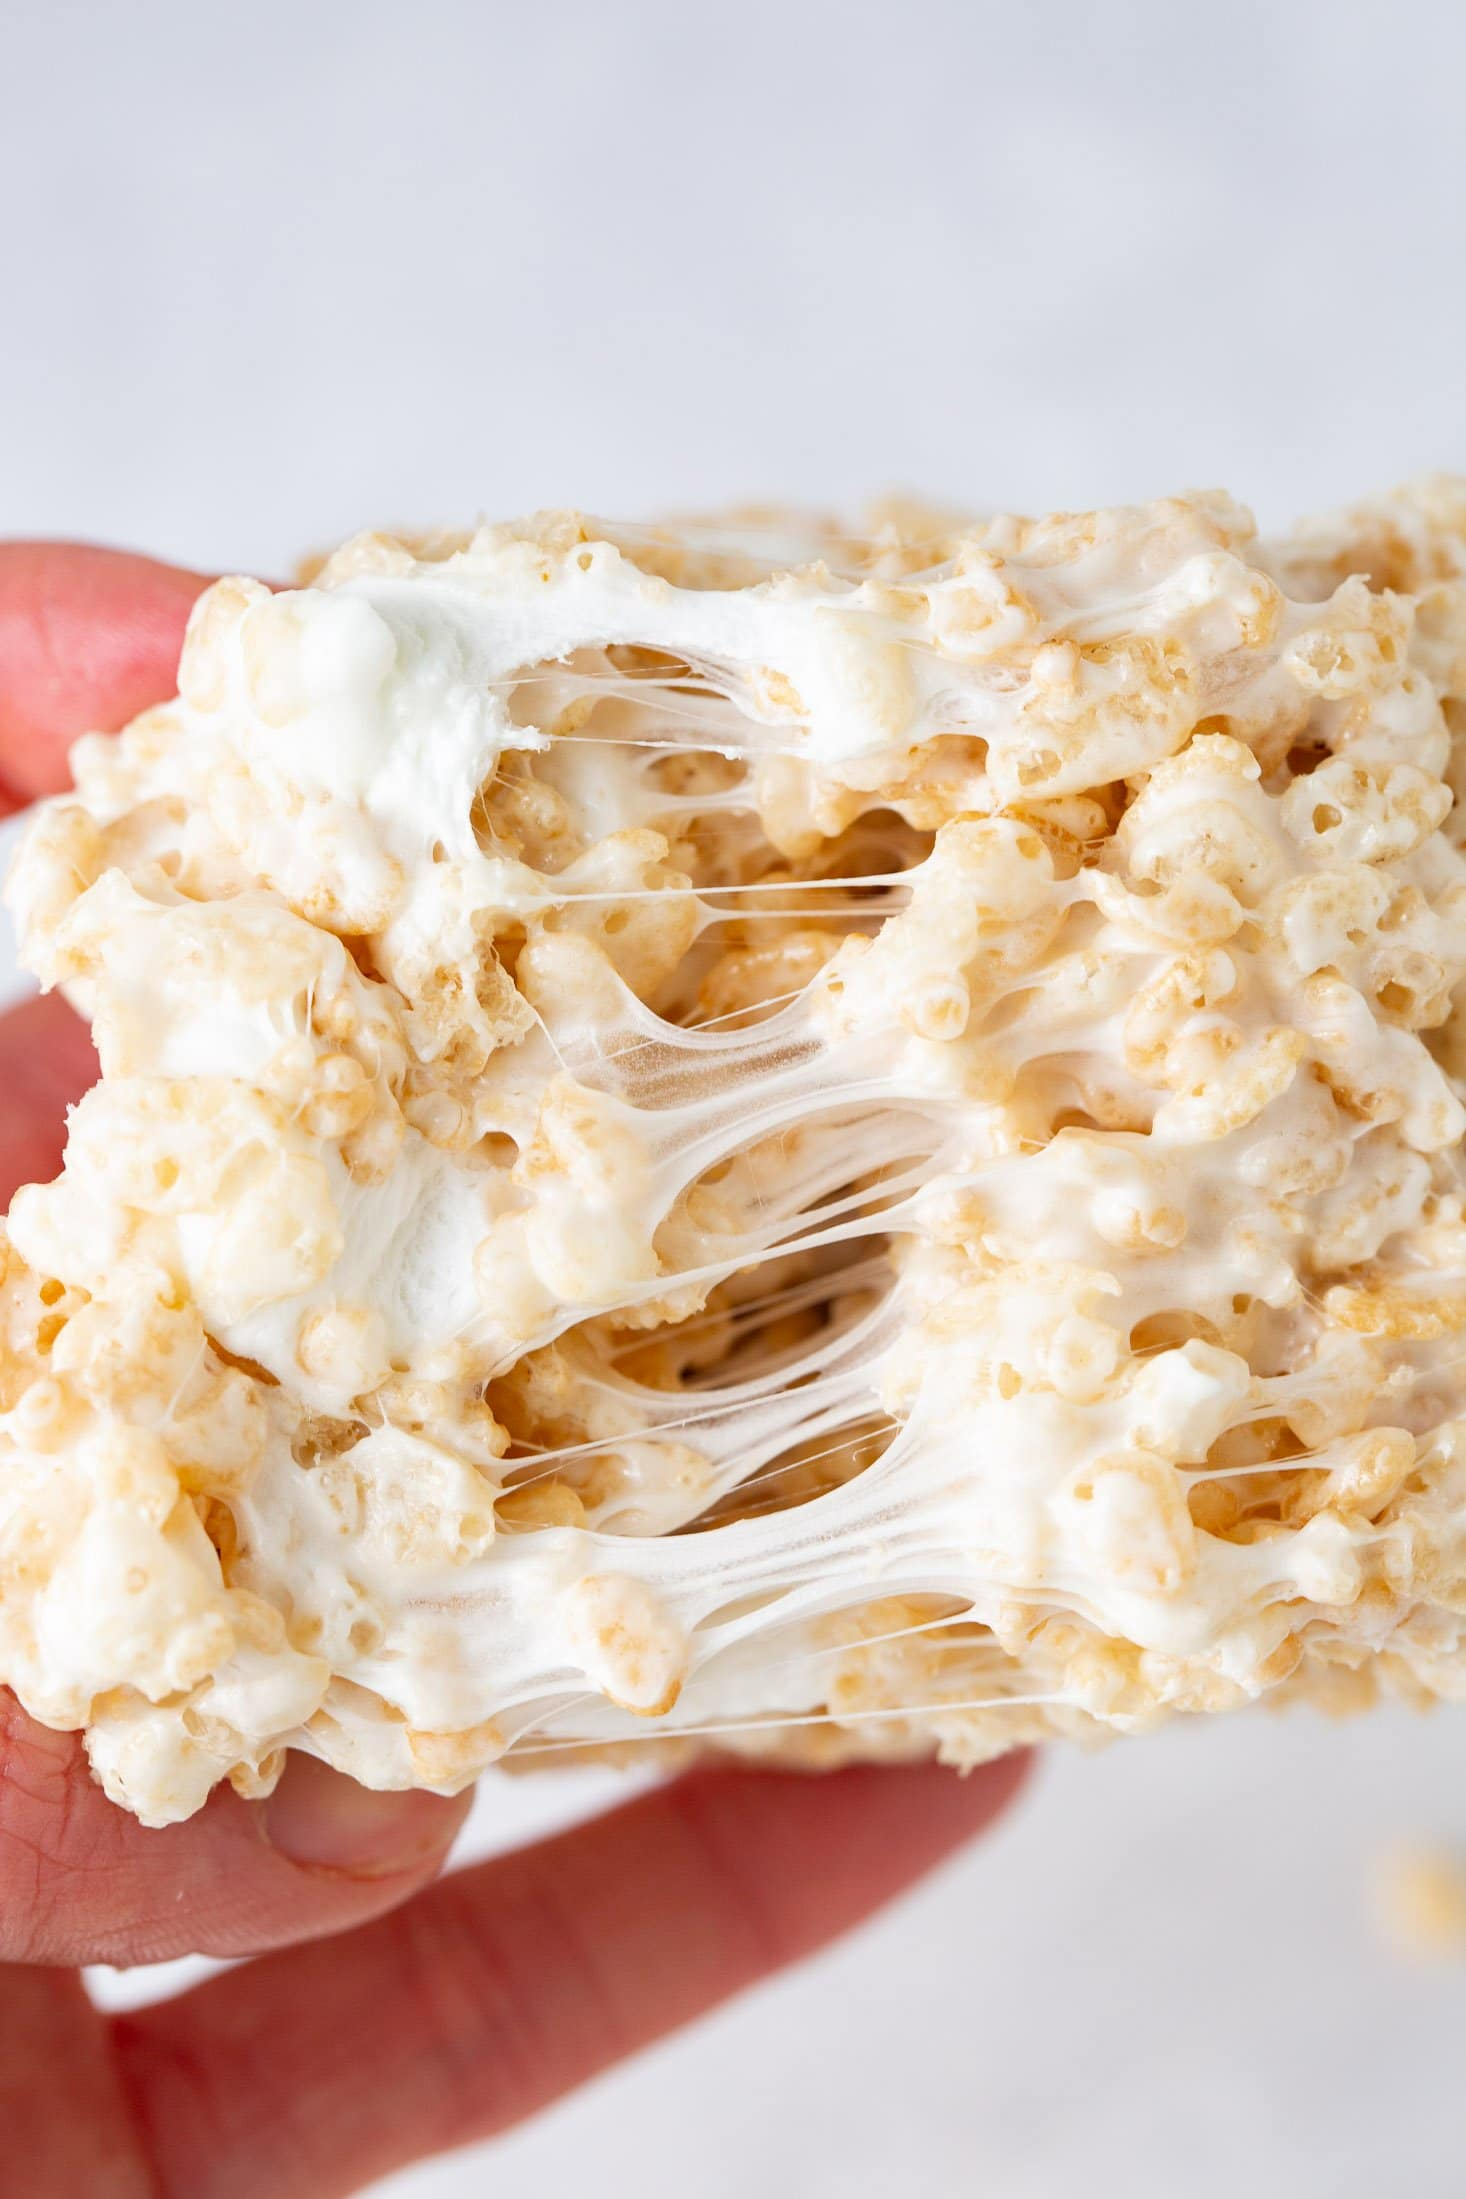 A piece of rice krispie treat that is being pulled apart to show the gooey melted marshmallow holding the rice krispies together.